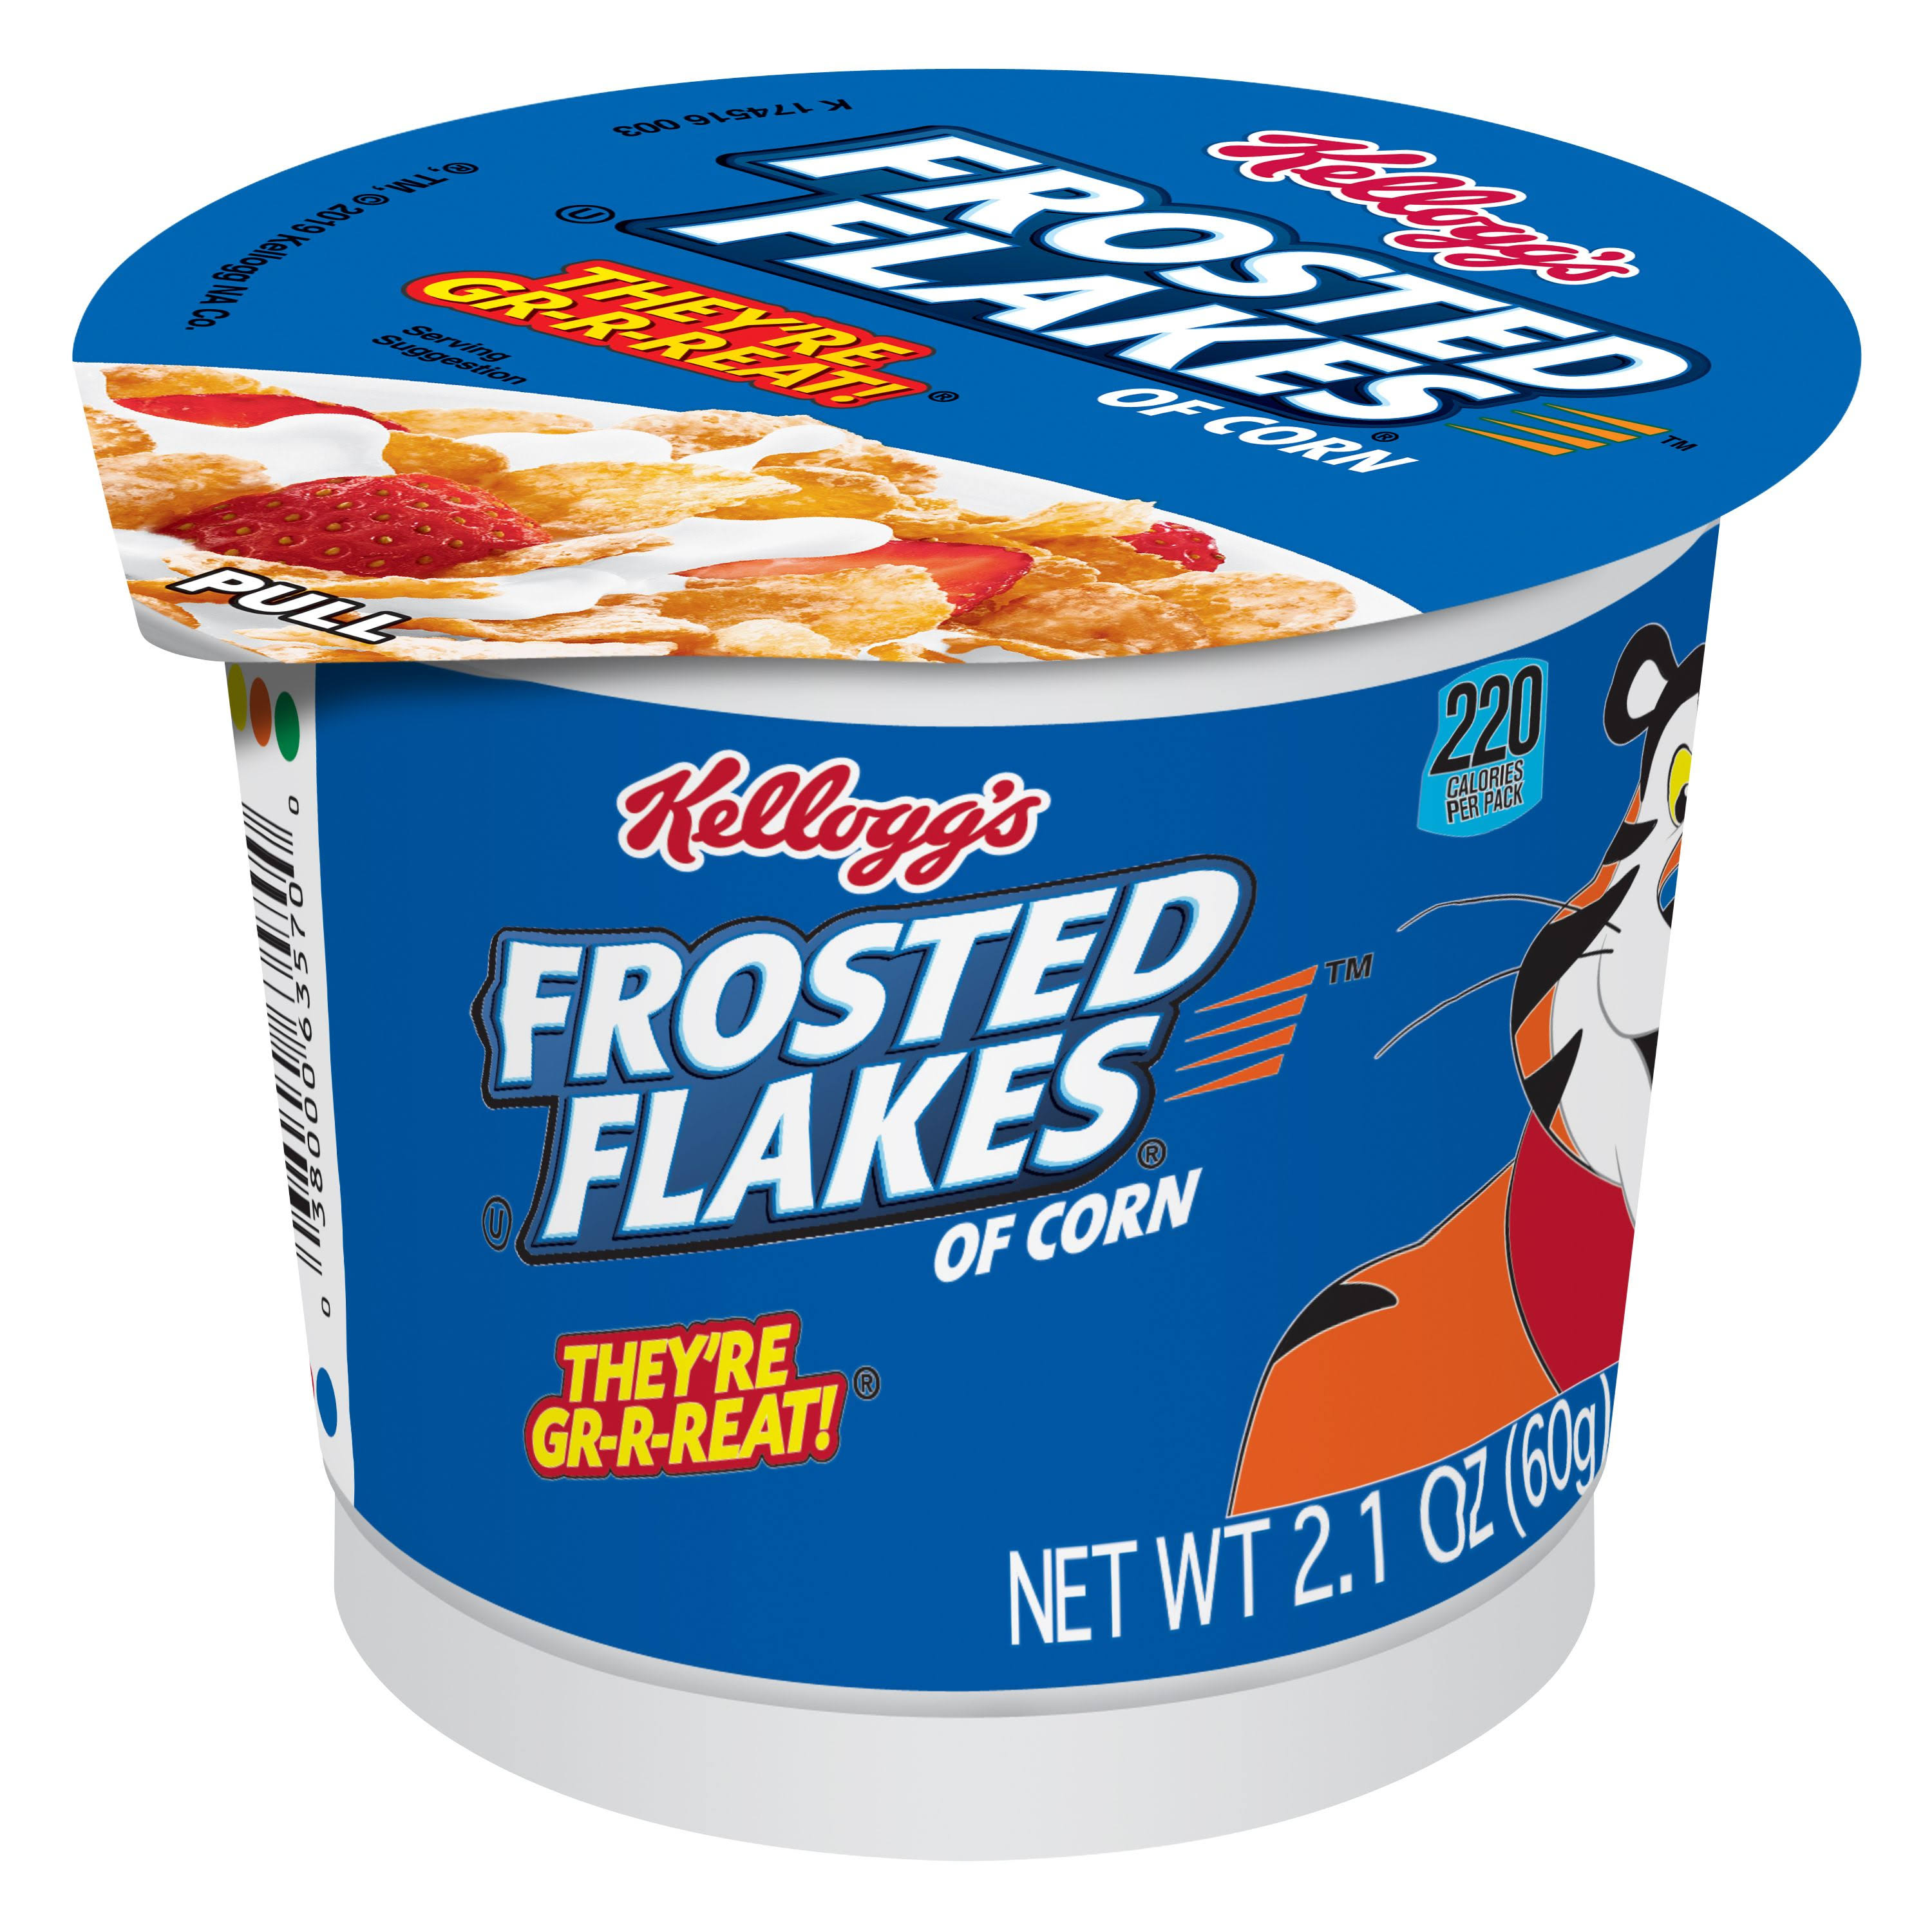 Kellogg's Frosted Flakes of Corn Cereal - 2.1 oz